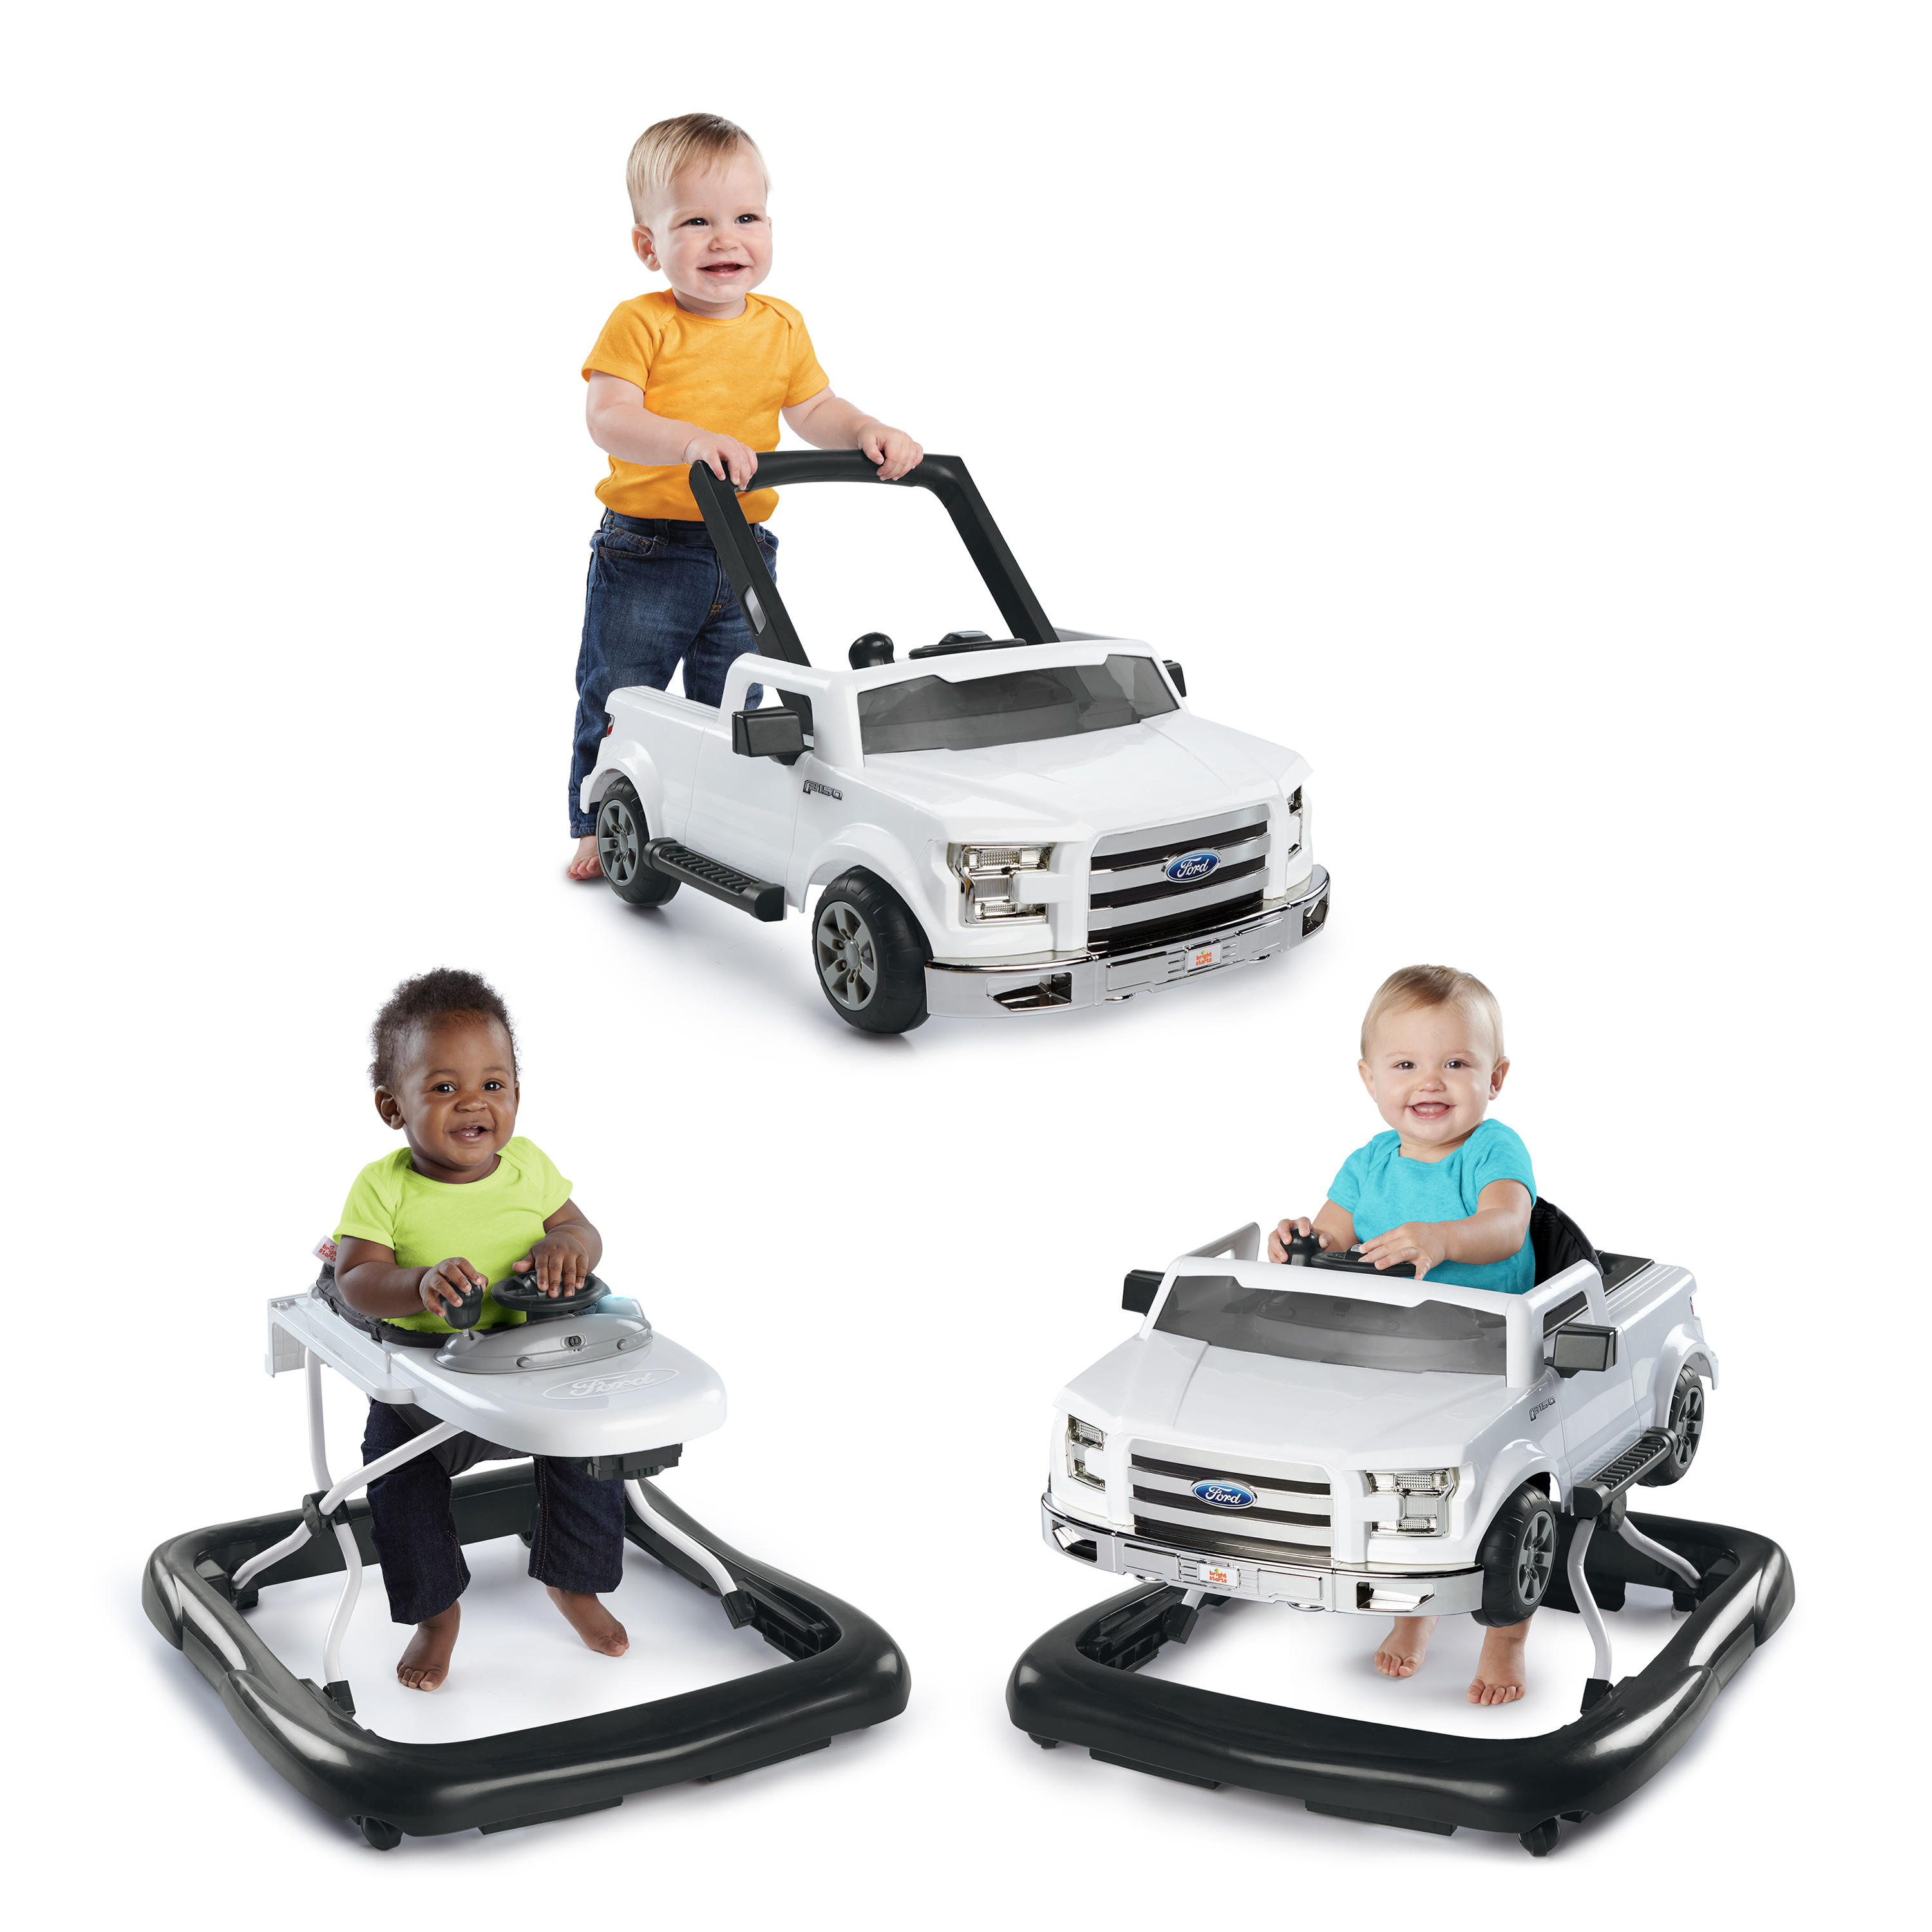 3 Ways to Play Walker™ - Ford F-150, White